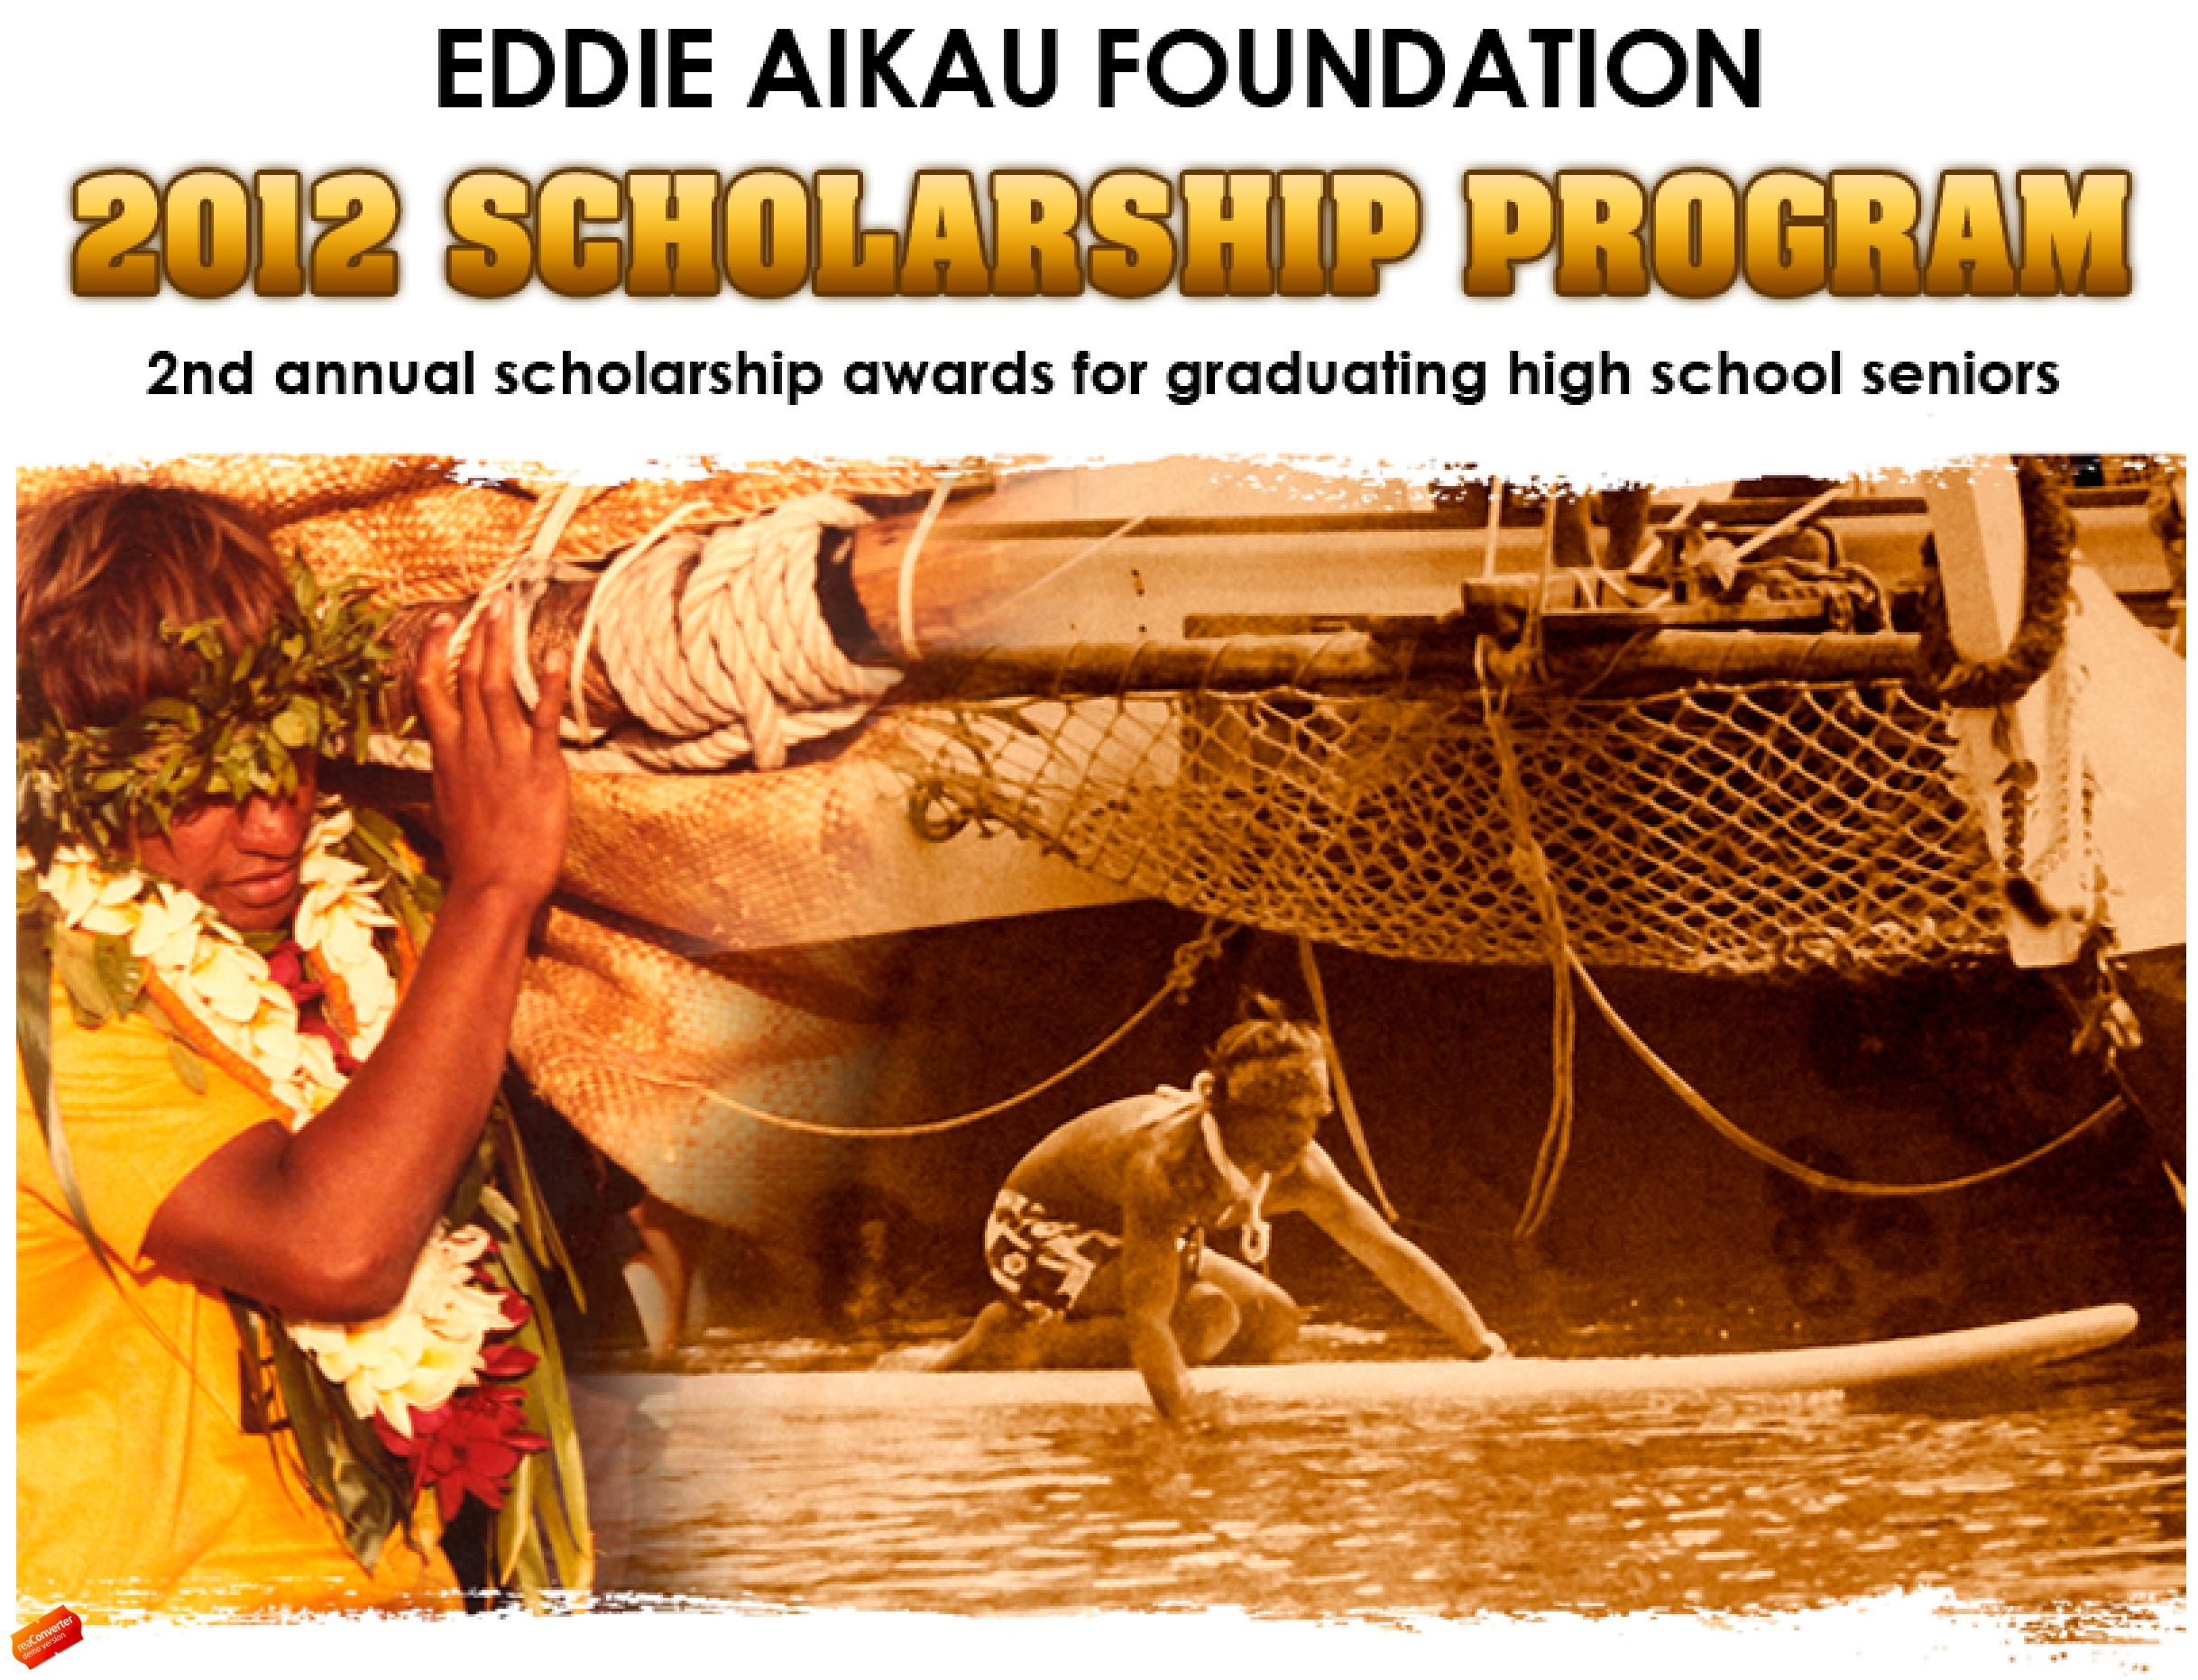 eddie aikau foundation essay contest